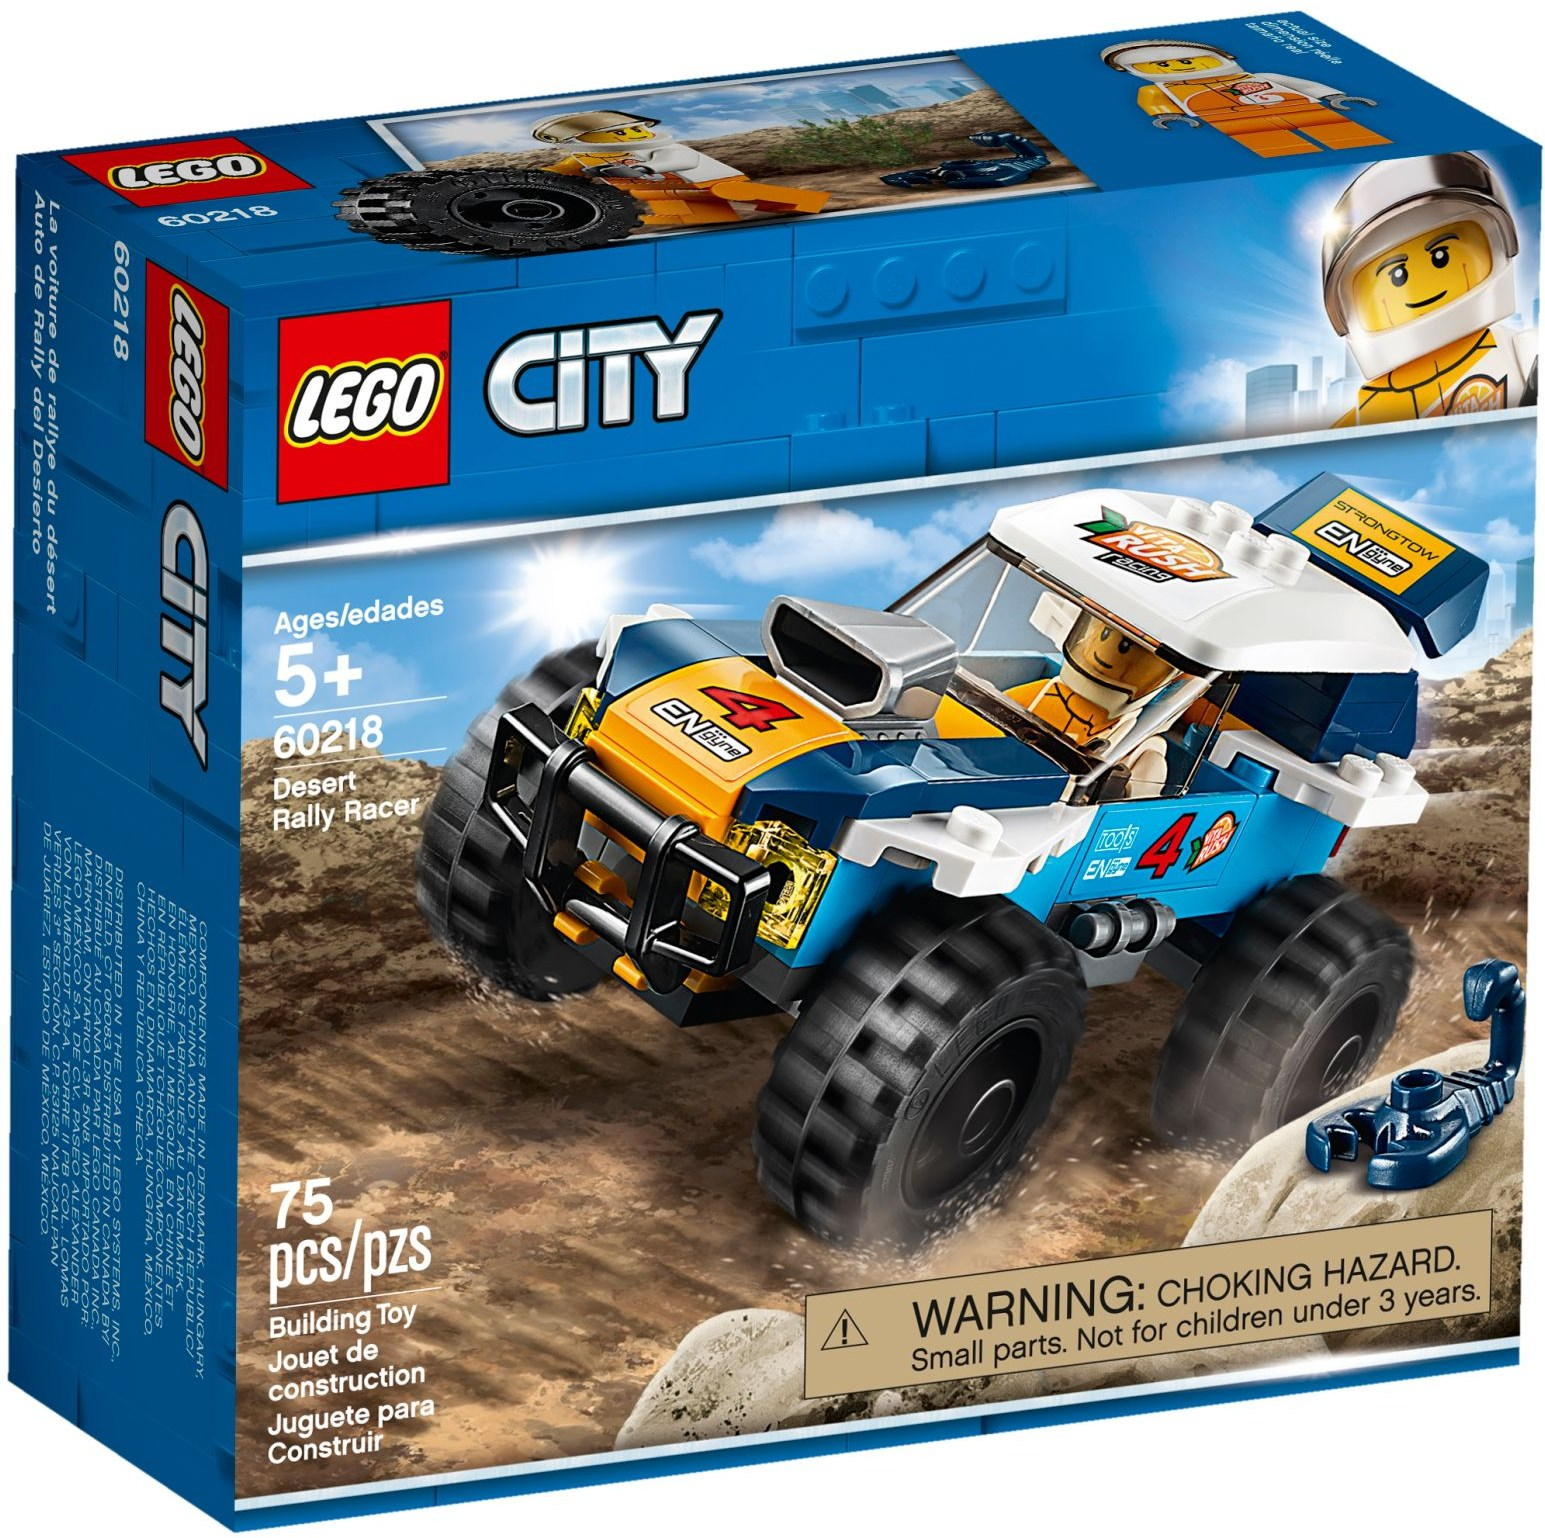 LEGO Town Sets: 60218 City Desert Rally Racer NEW